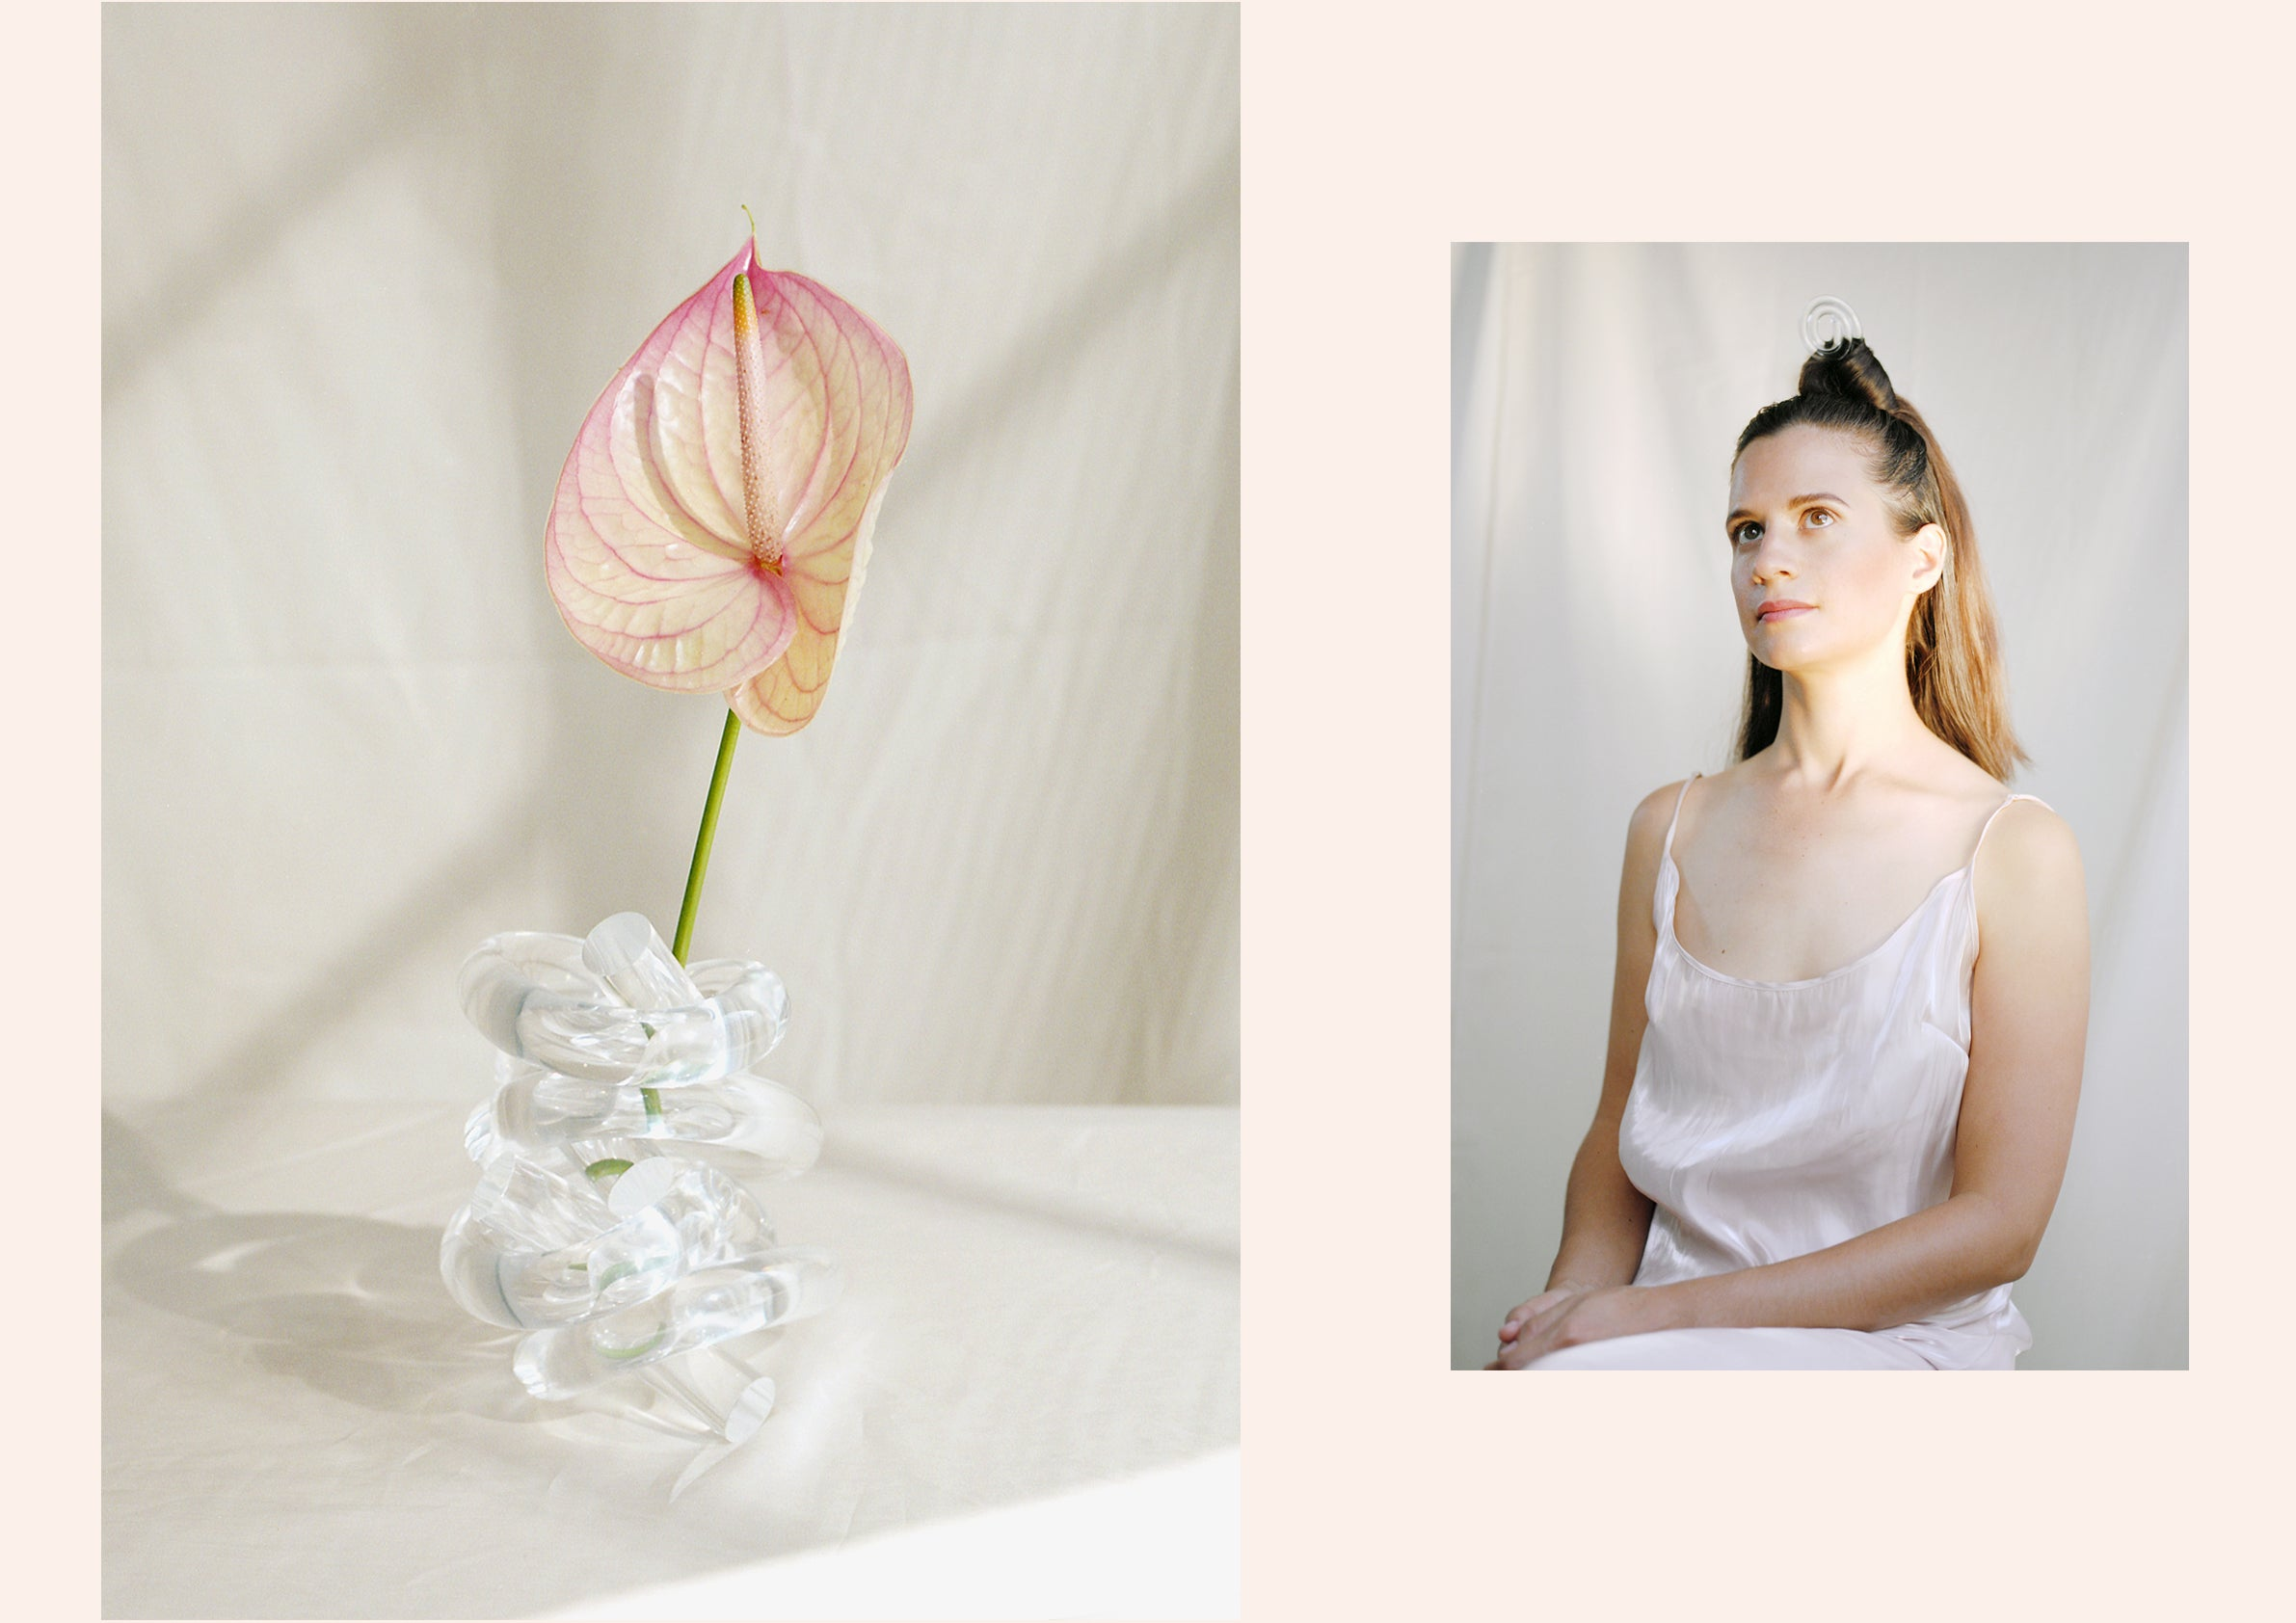 Corey Moranis clear lucite Big Knot home around bloom, Corey Moranis Swirl Hair Pin on model collage